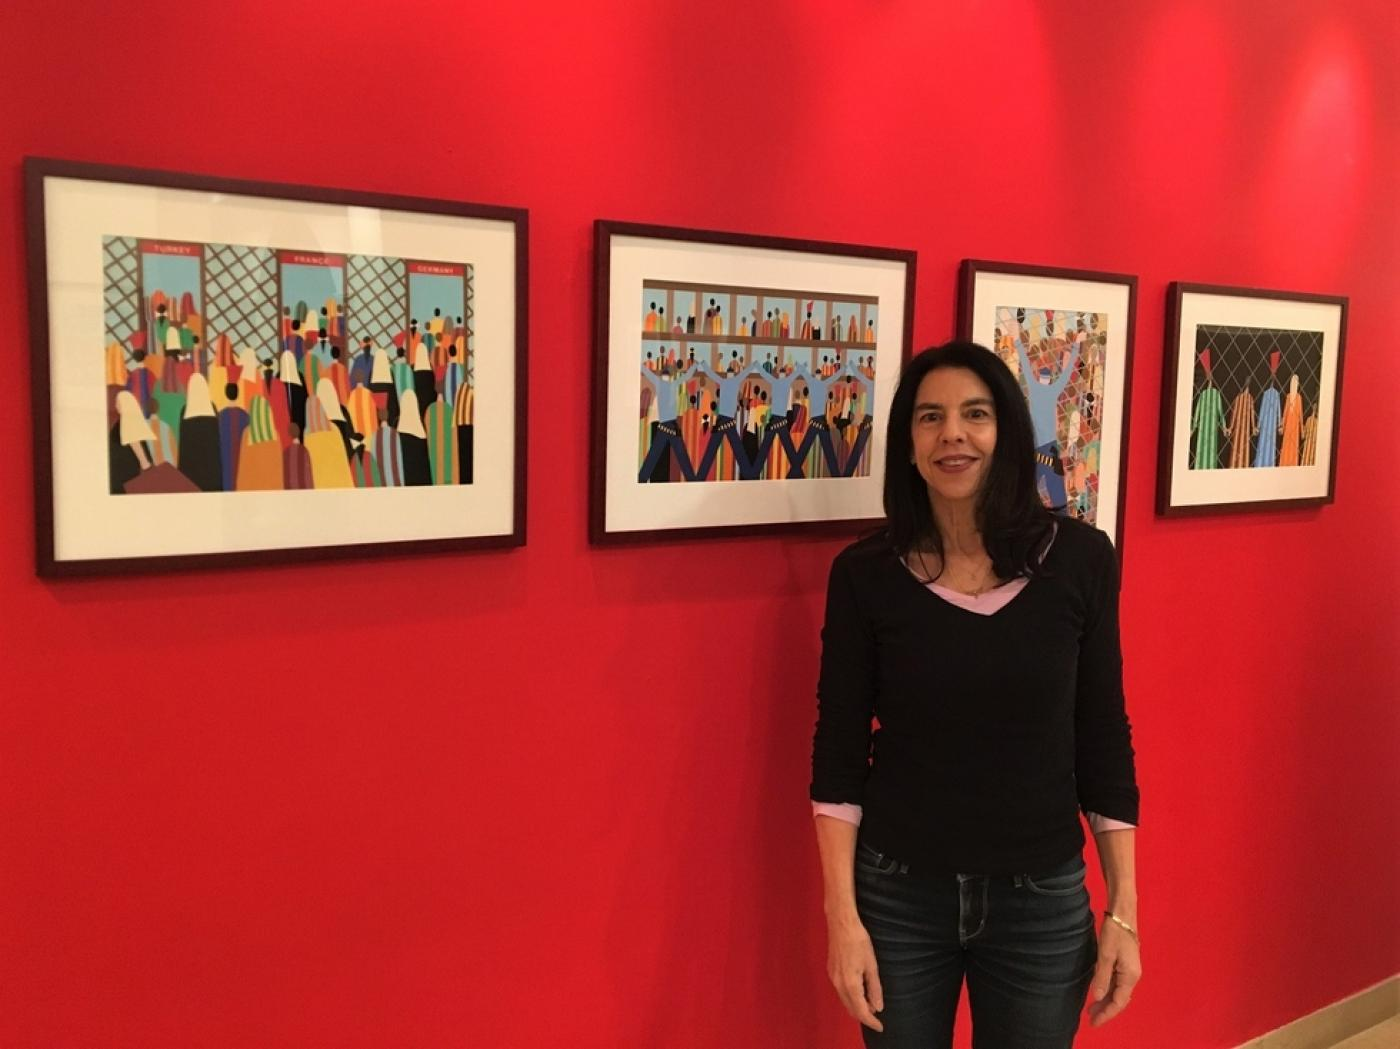 Art Gallery Artist Renowned Arab American Artist Takes On Syrian Crisis In Newest